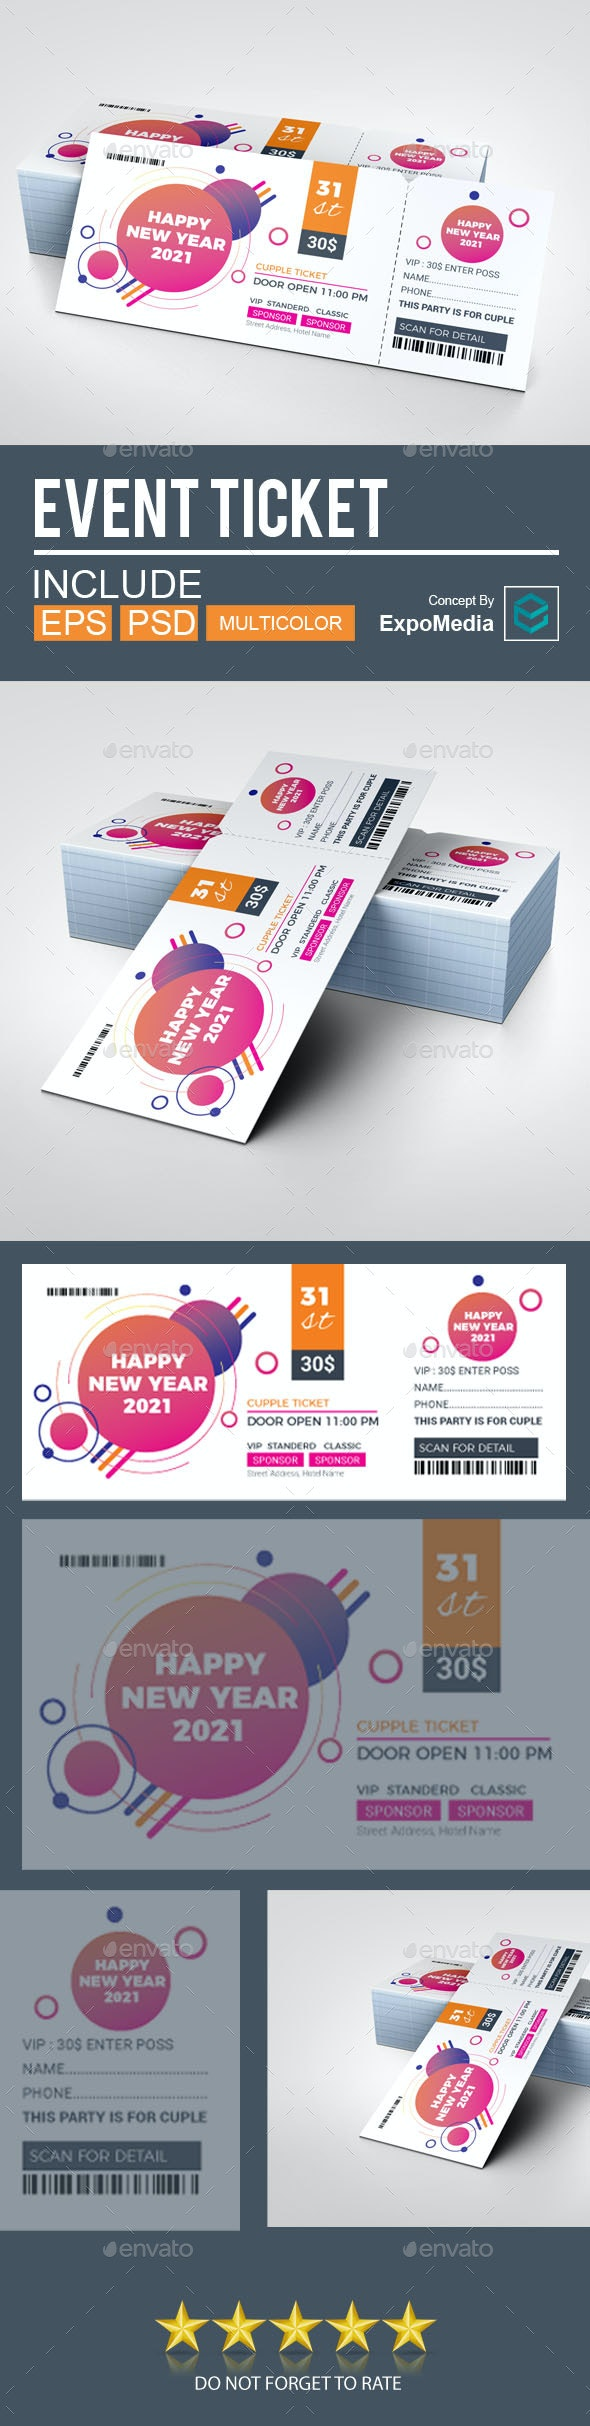 Event Ticket | Ticket Template 2021 New Year - Cards & Invites Print Templates